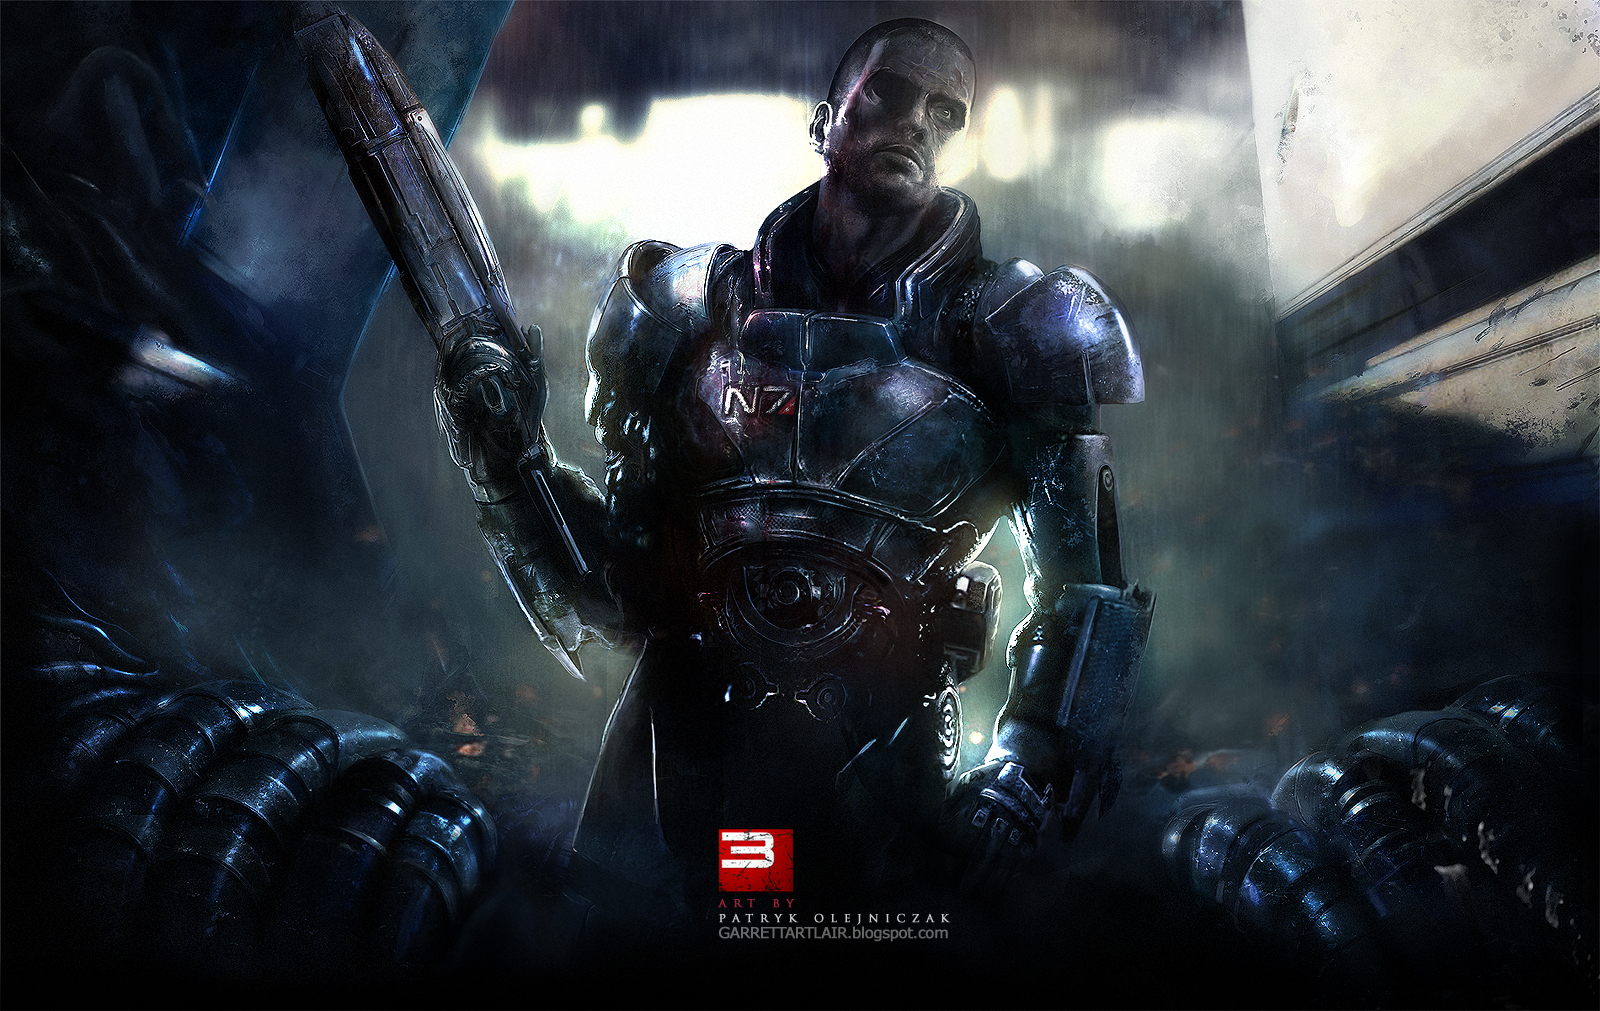 Mass Effect 3 Teaser Wallpaper (Shepard) by Patryk Olejniczak